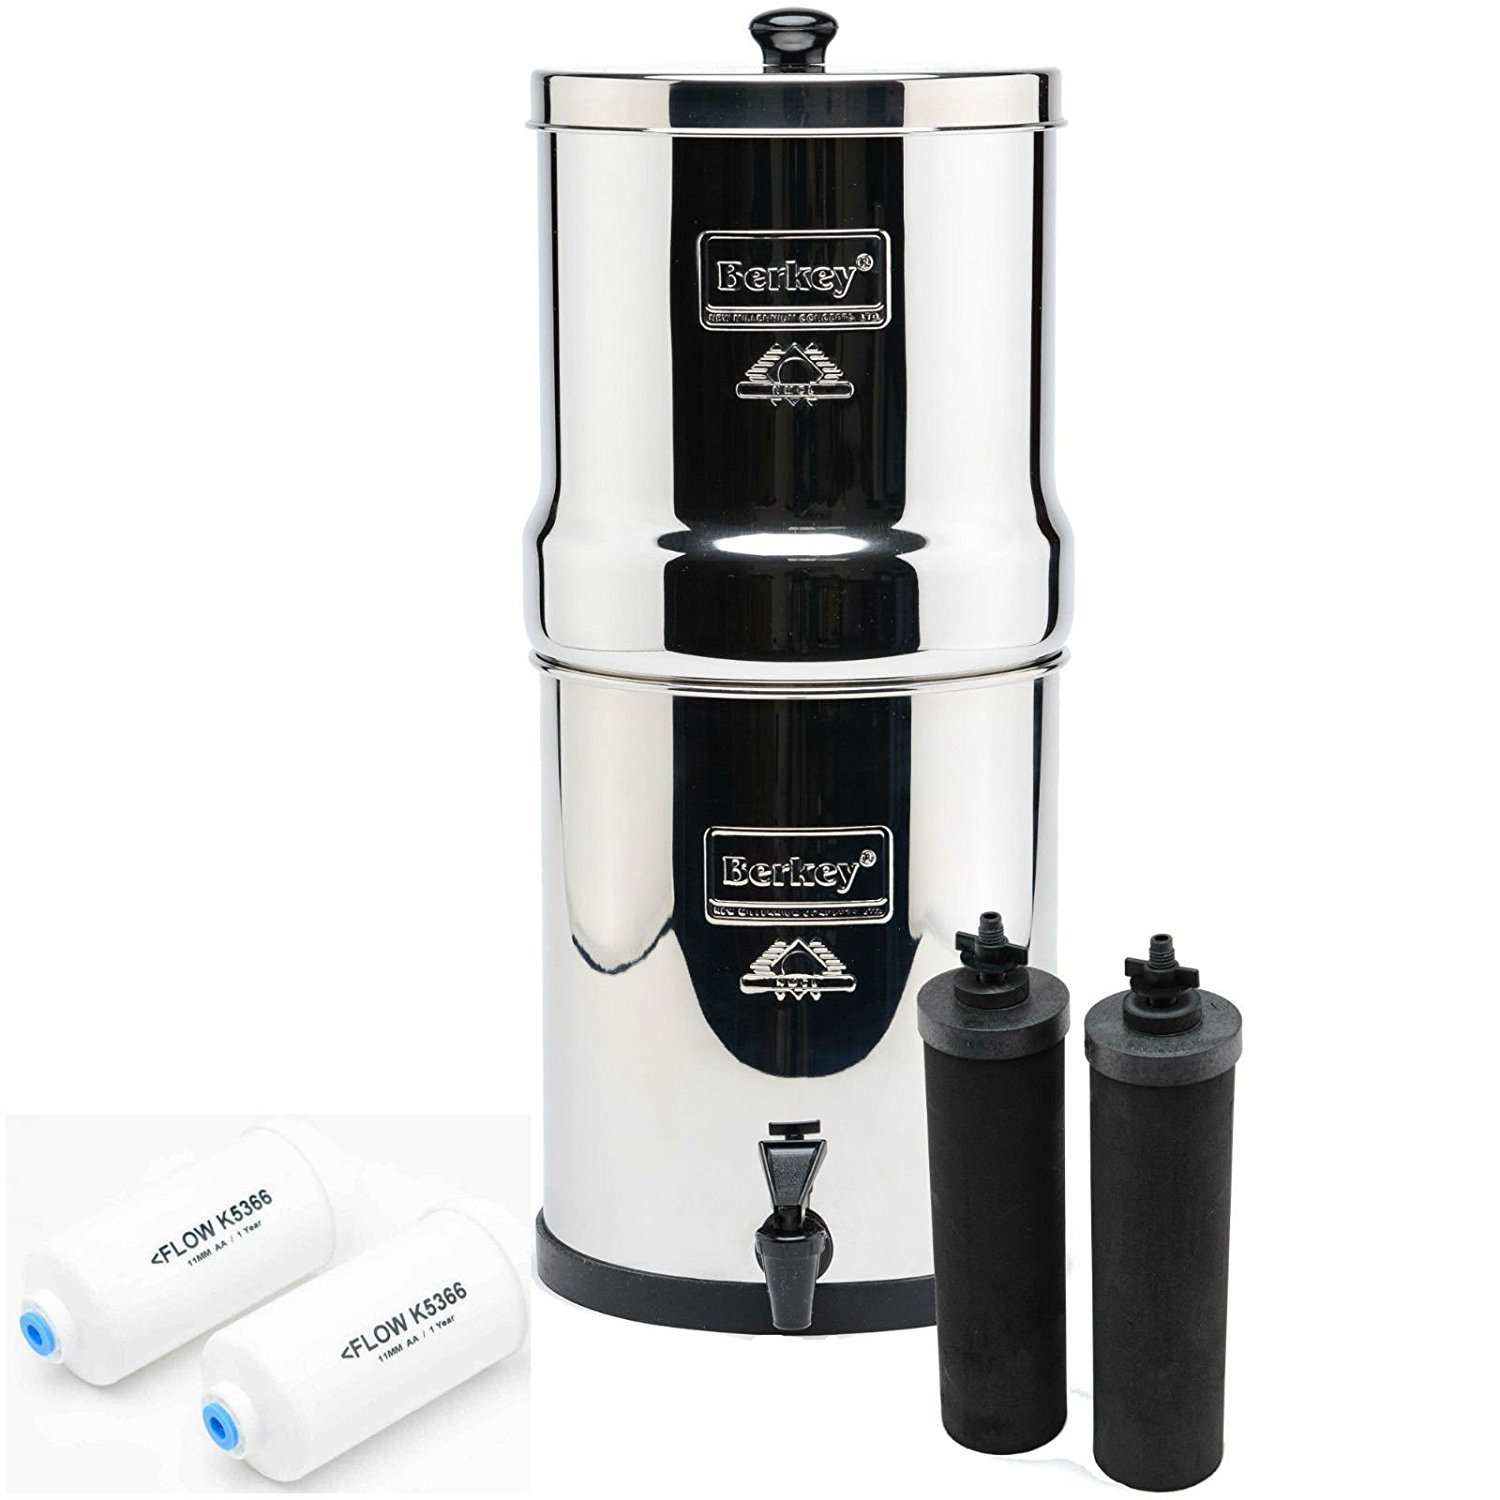 IMP6X2-BB Imperial Berkey with 2 Black Filters and 2 Flouride Filters - Holds 4.5 gallons of purified water and filters up to 5.5 gallons per hour (running with the 2 included filters)The Imperial is made with High Grade 304 Stainless Steel and measures 10